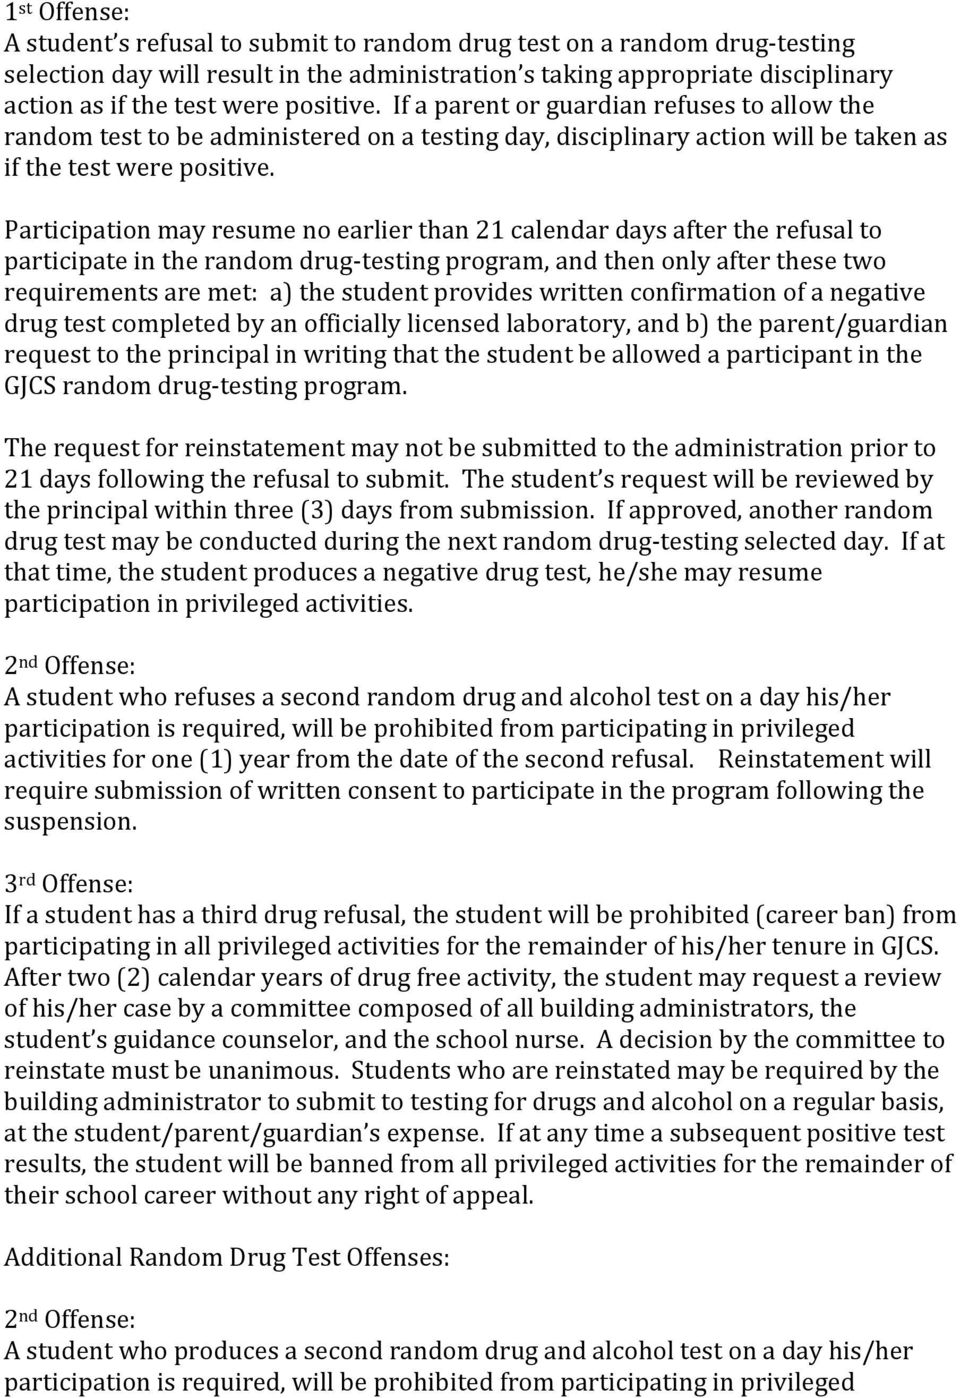 Participation may resume no earlier than 21 calendar days after the refusal to participate in the random drug-testing program, and then only after these two requirements are met: a) the student